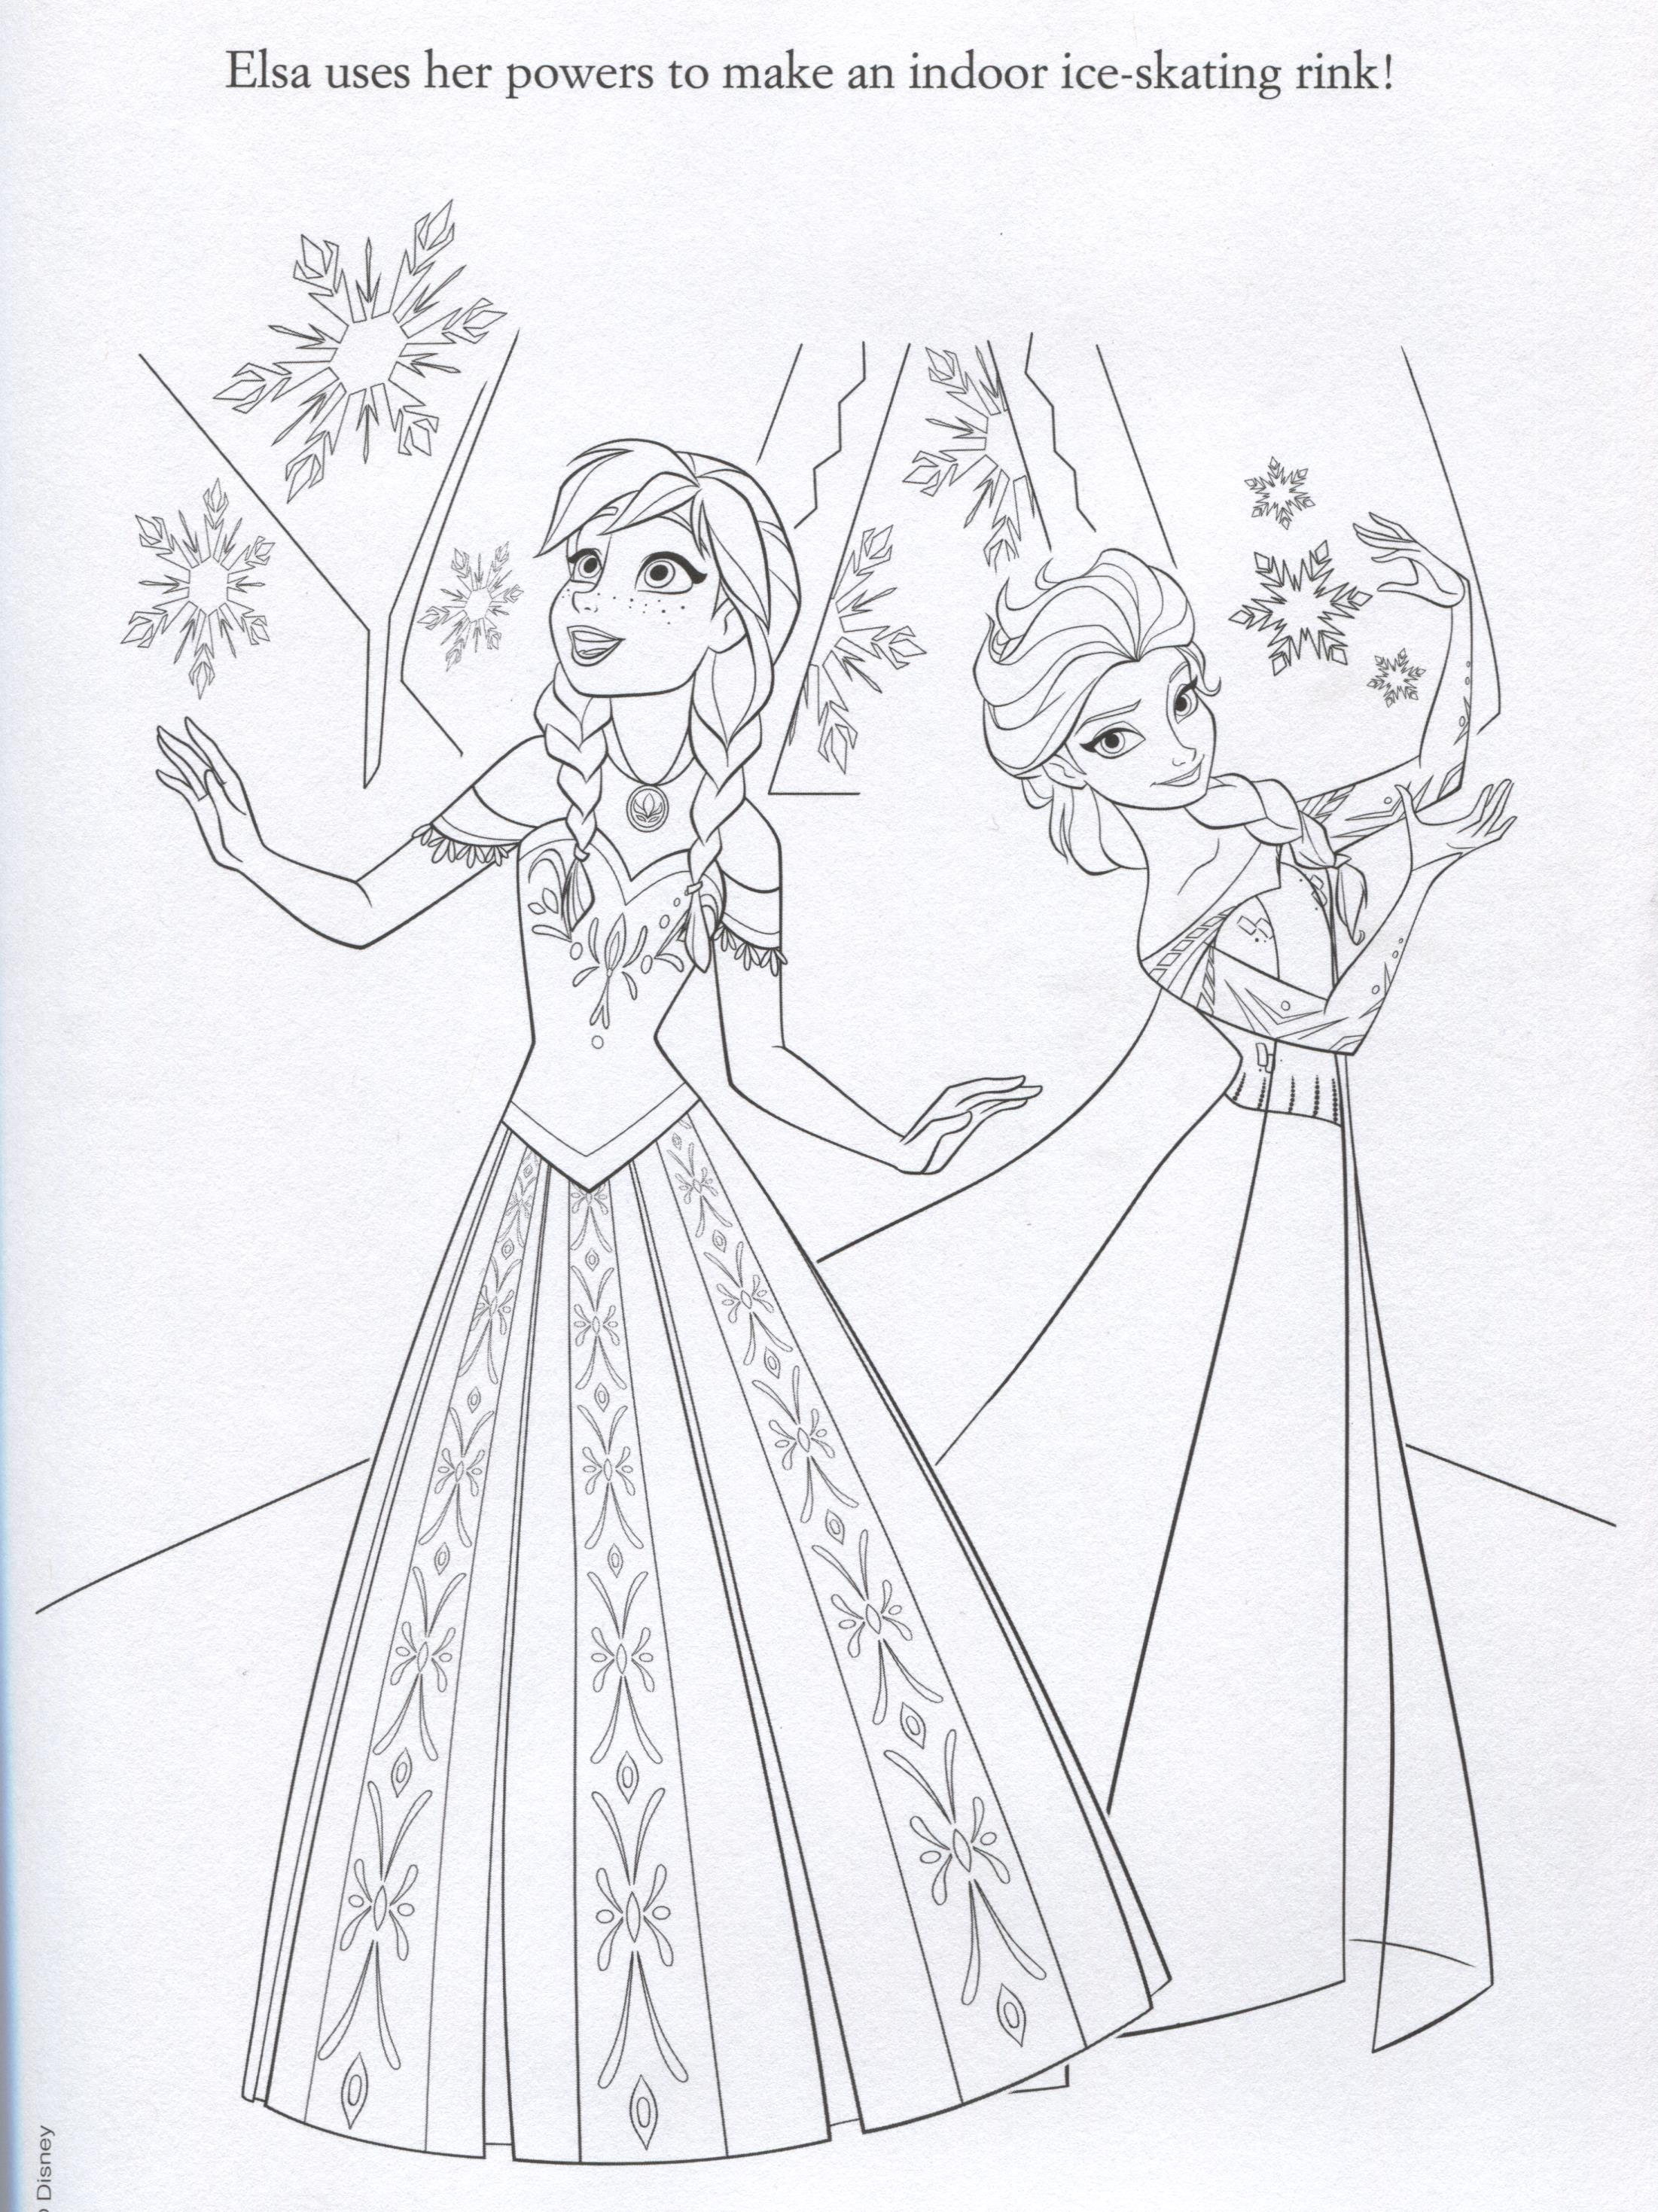 frozen 2 fever coloring pages - photo#34